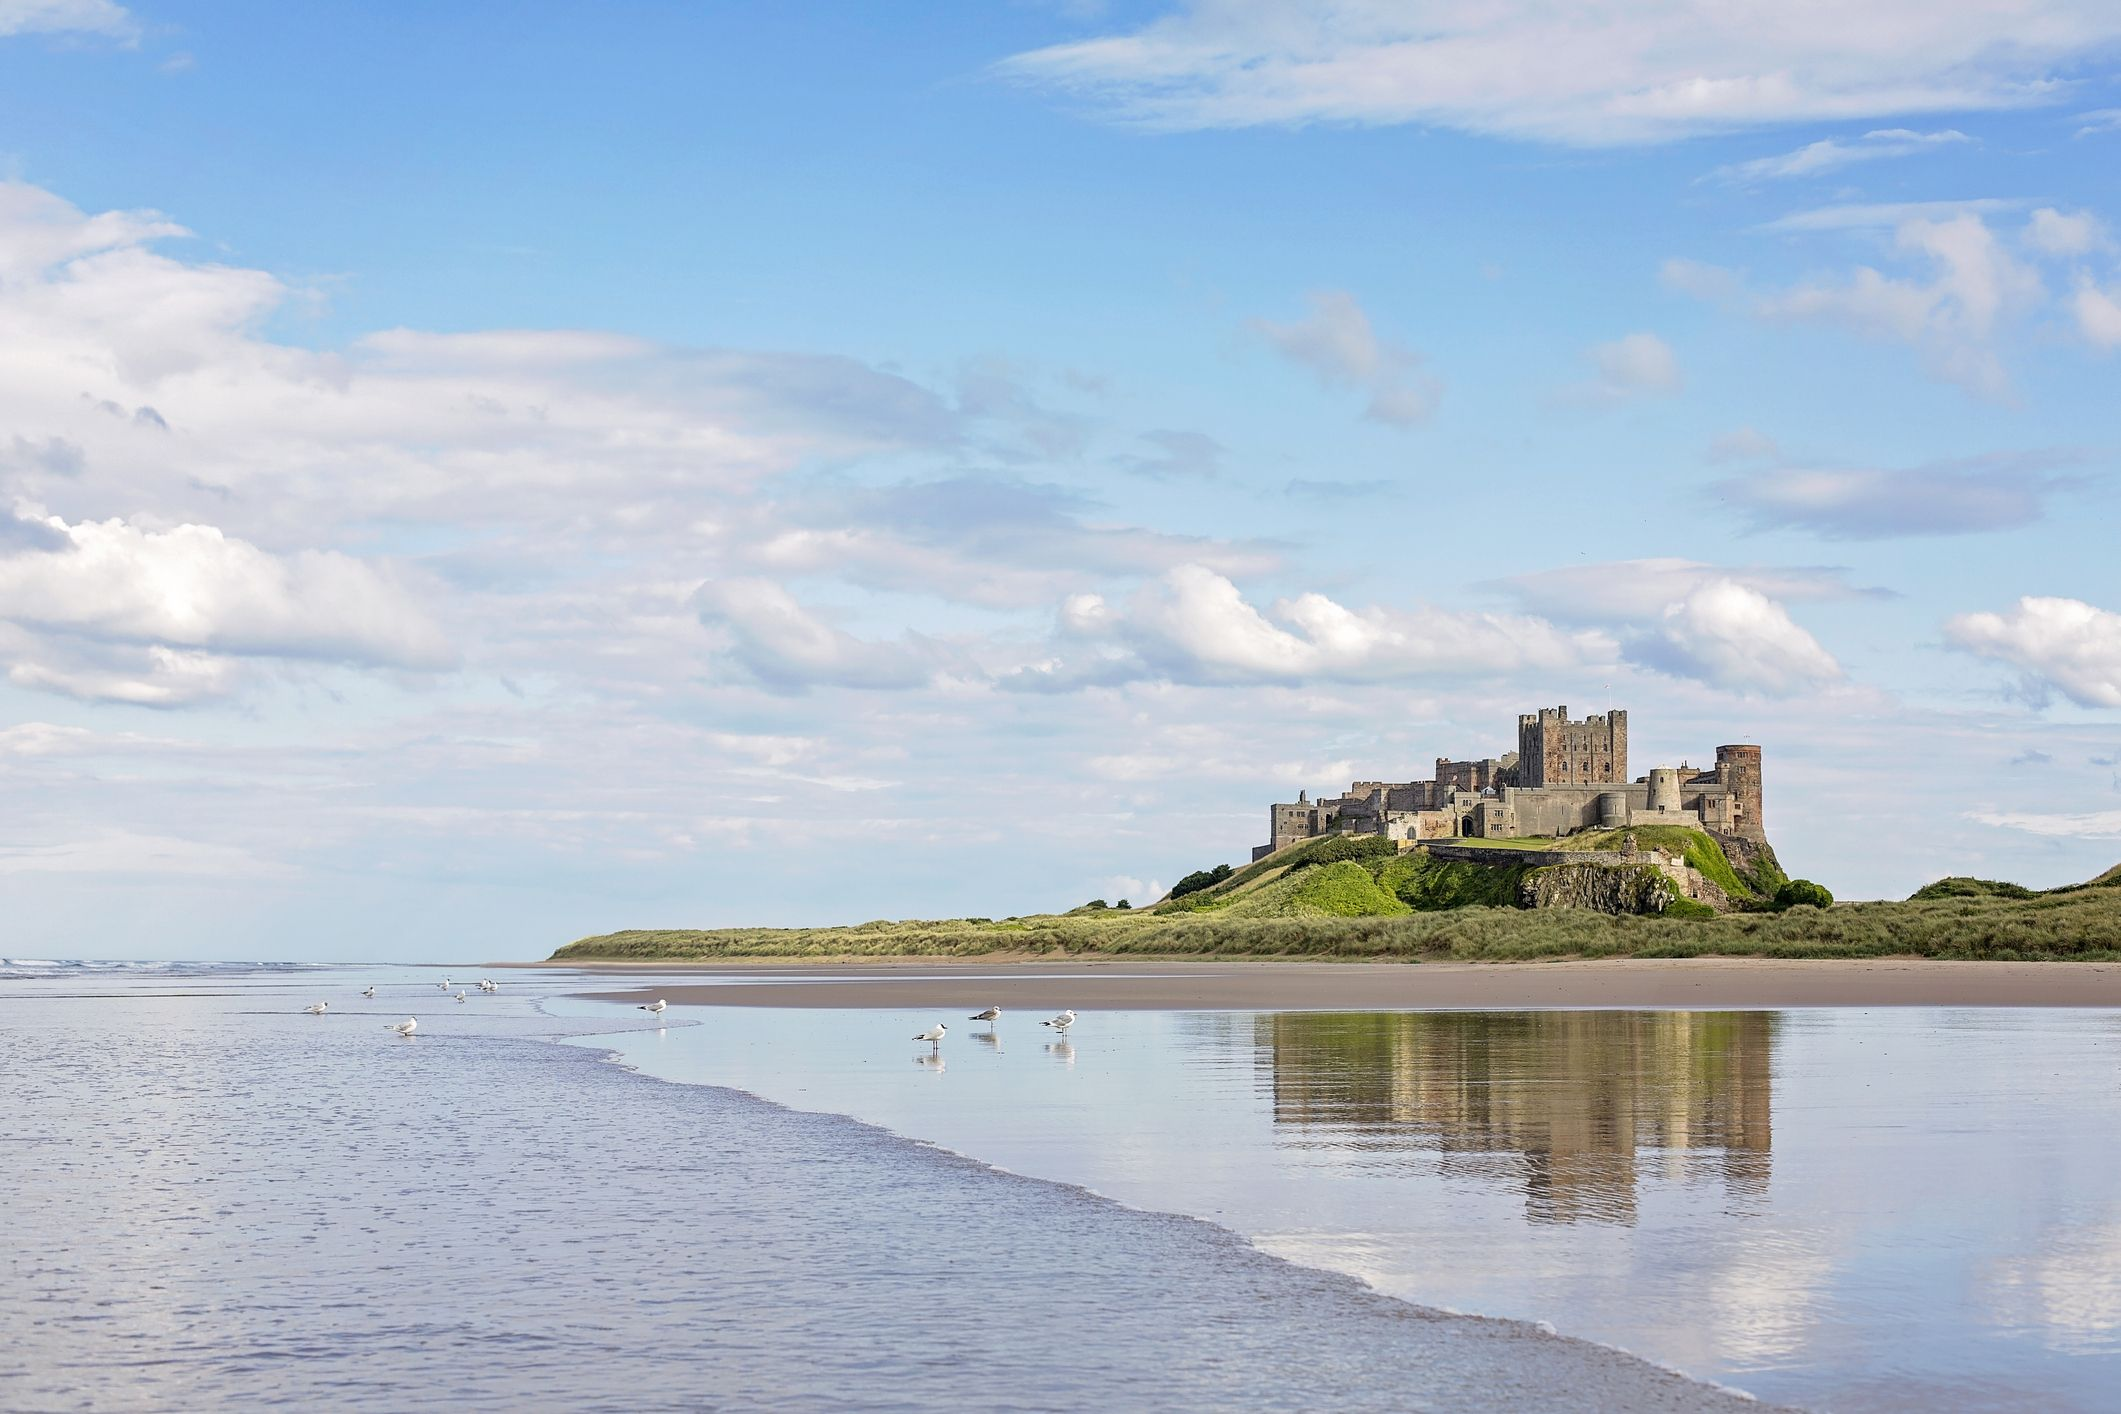 Bamburgh in Northumberland has been ranked as the UK's favourite seaside town